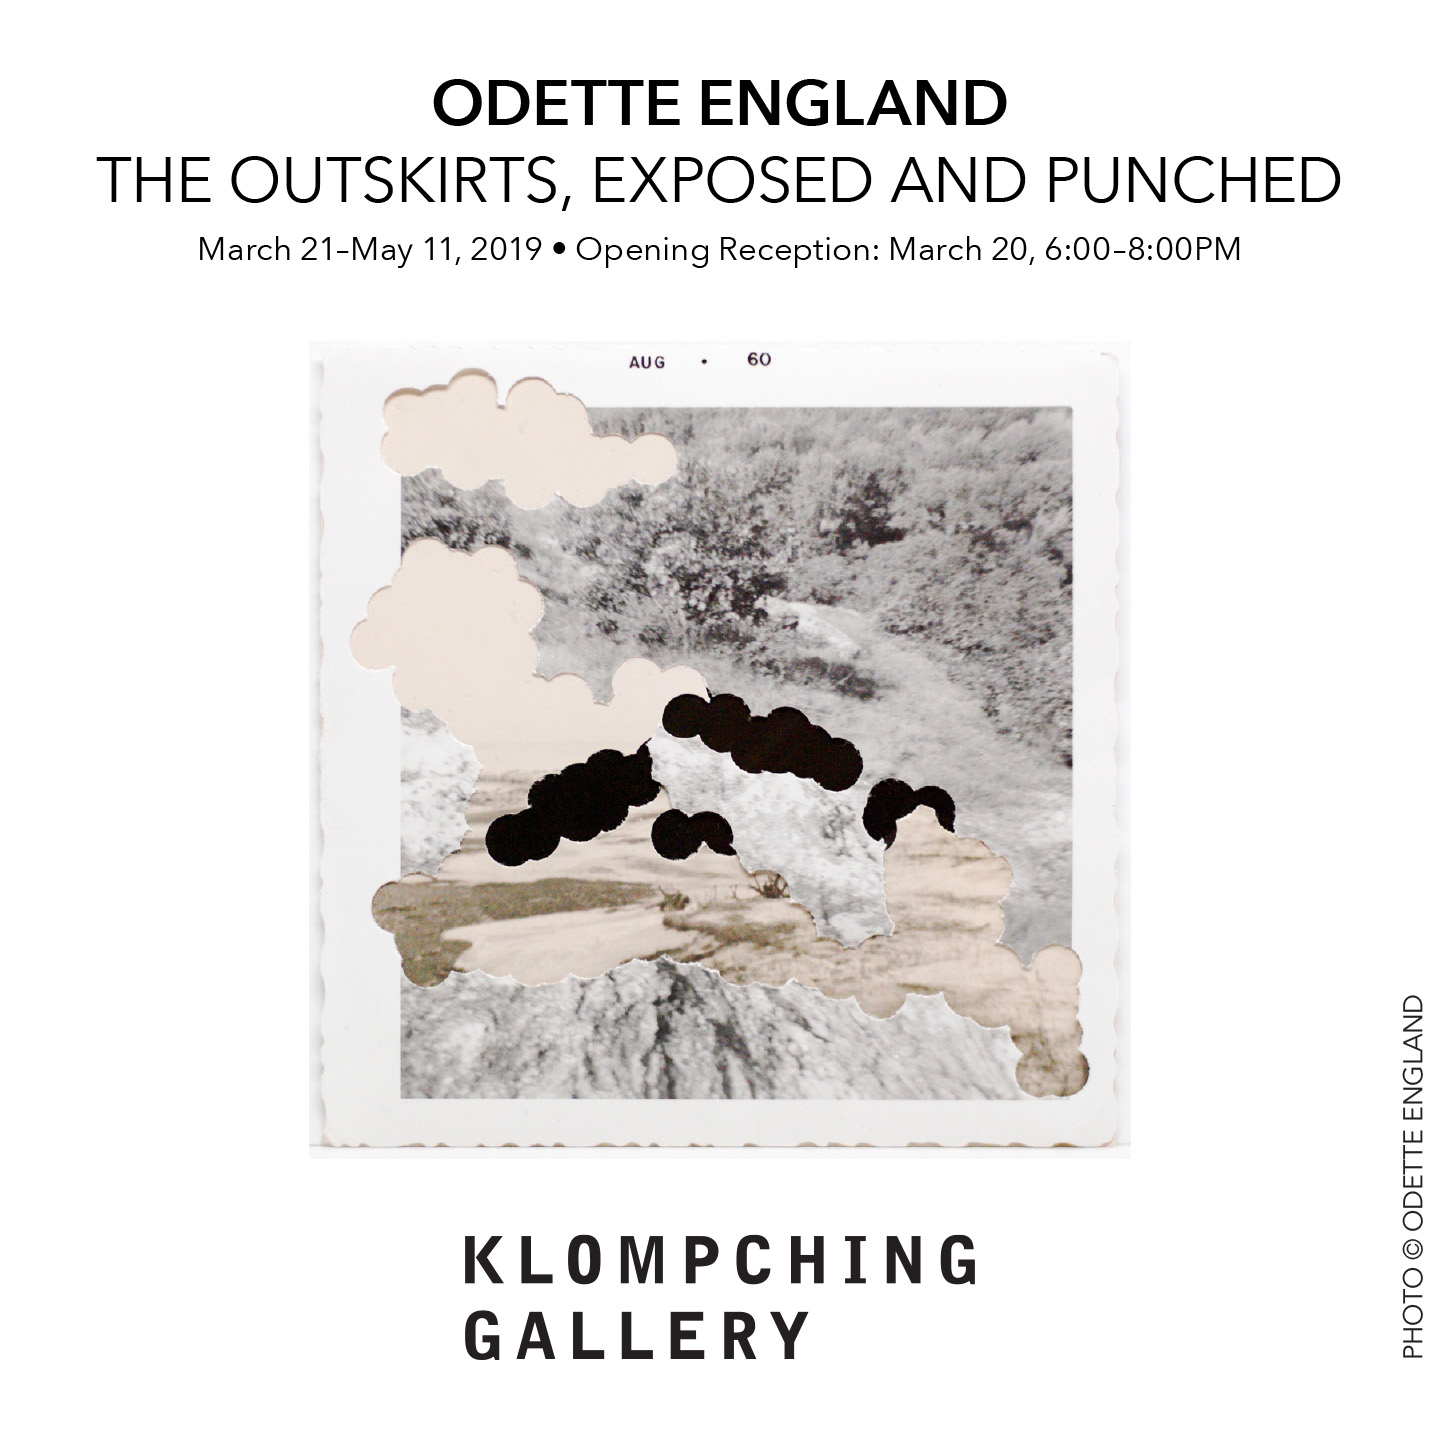 A click-through image graphic for the exhibition 'The Outskirts, Exposed and Punched', March 21st to May 11th, 2019.